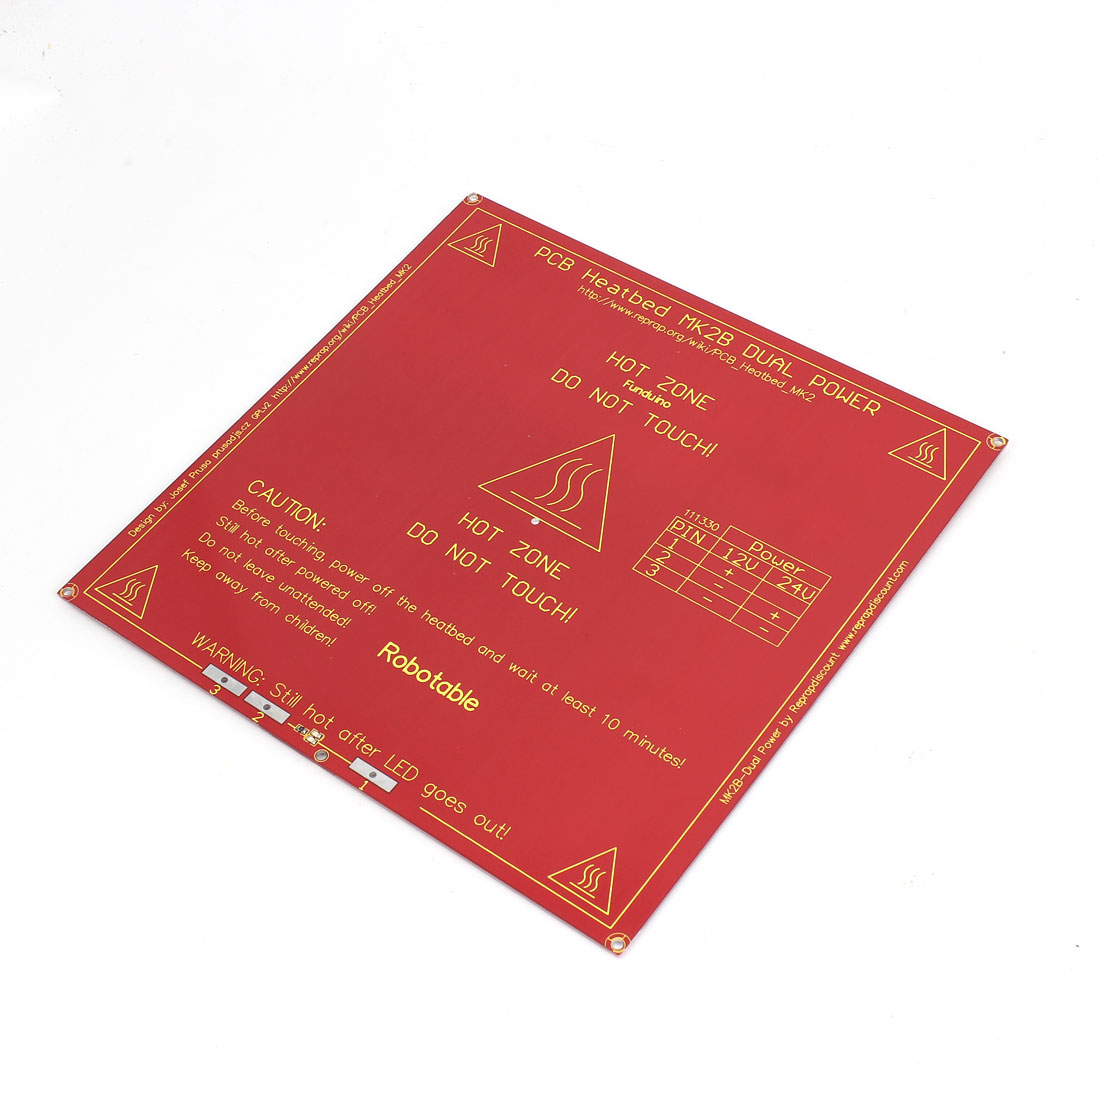 RepRap 3D Printer PCB Heatbed MK2a Heated Heat Bed Red for Prusa Mendel